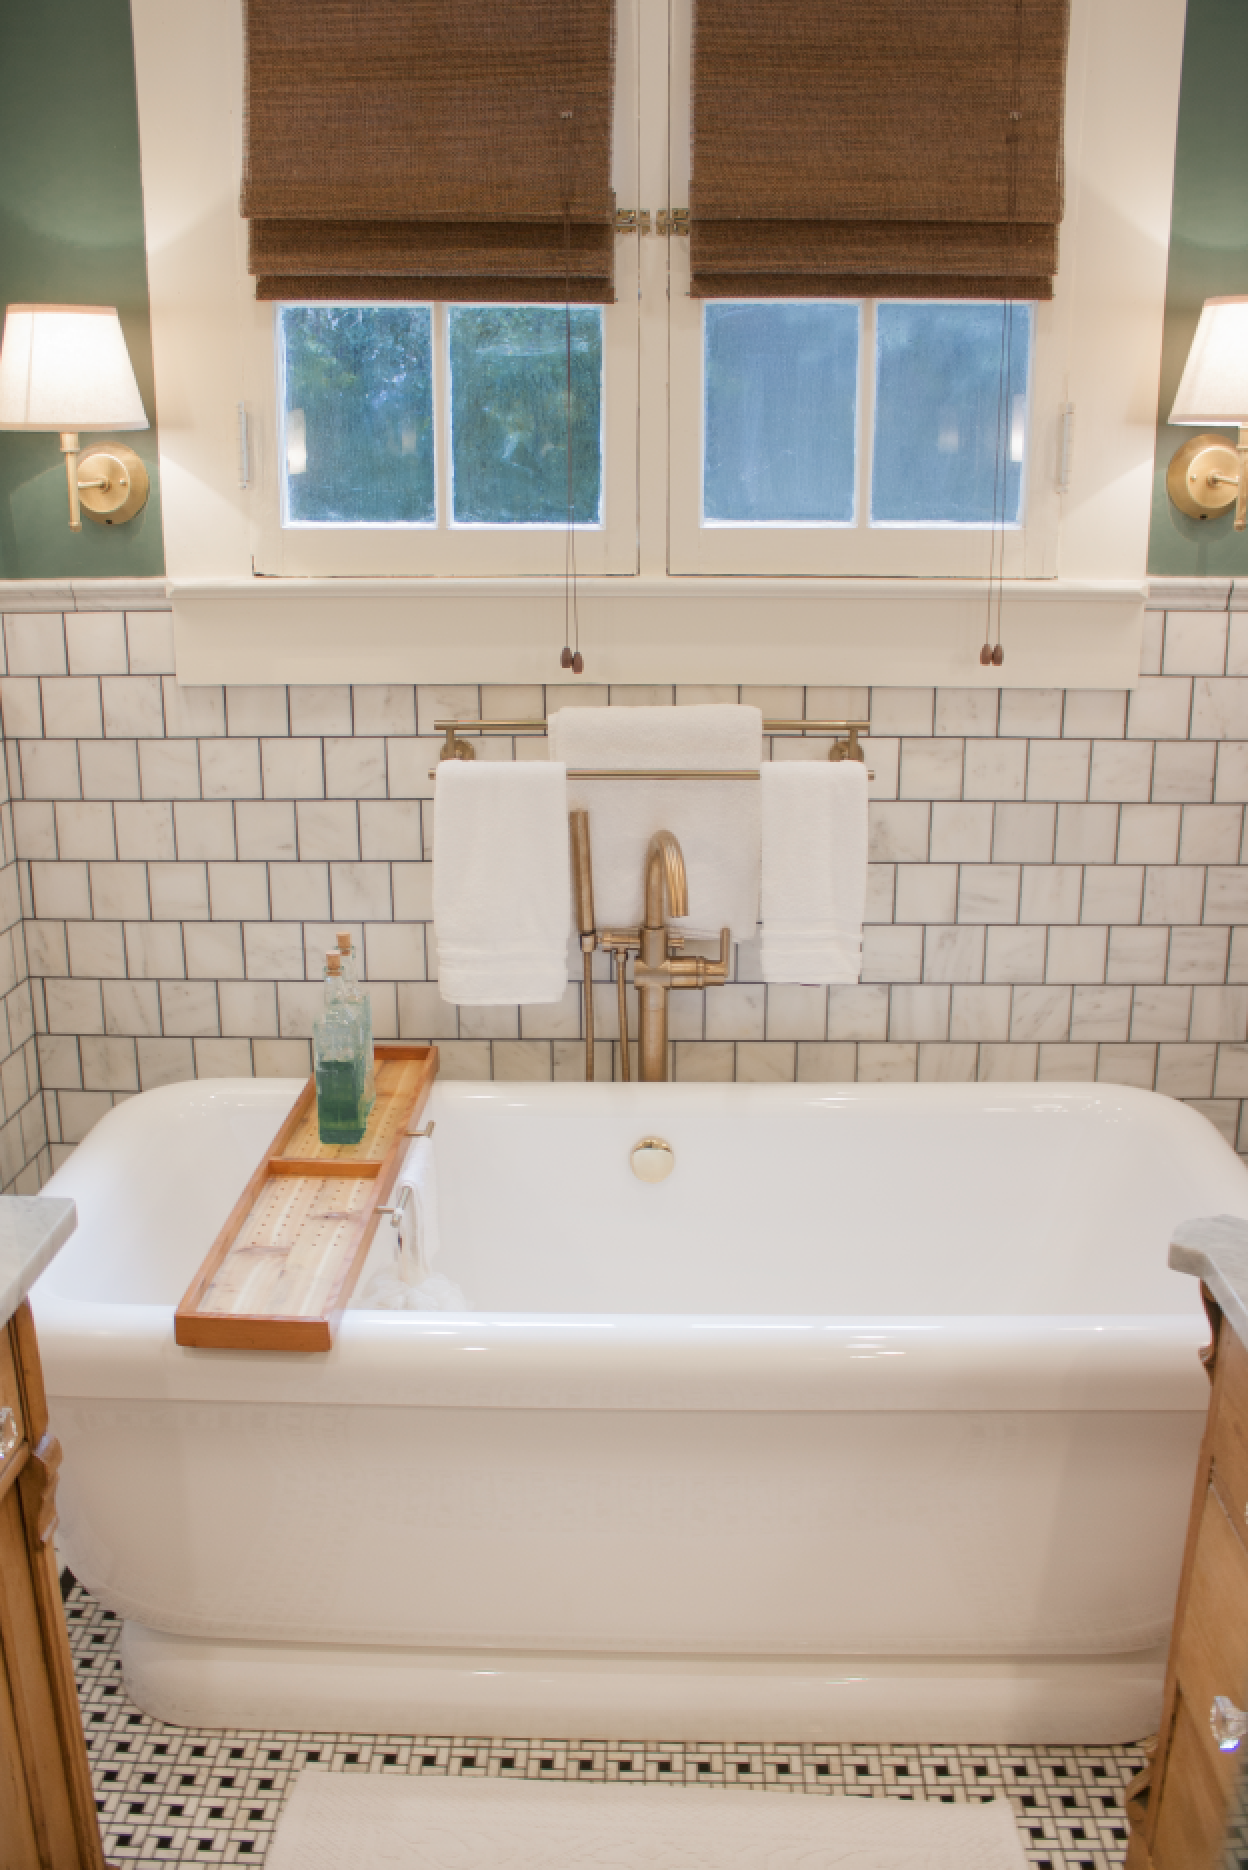 The Master Bathroom Renovation Has Been A Journey To Say The Least